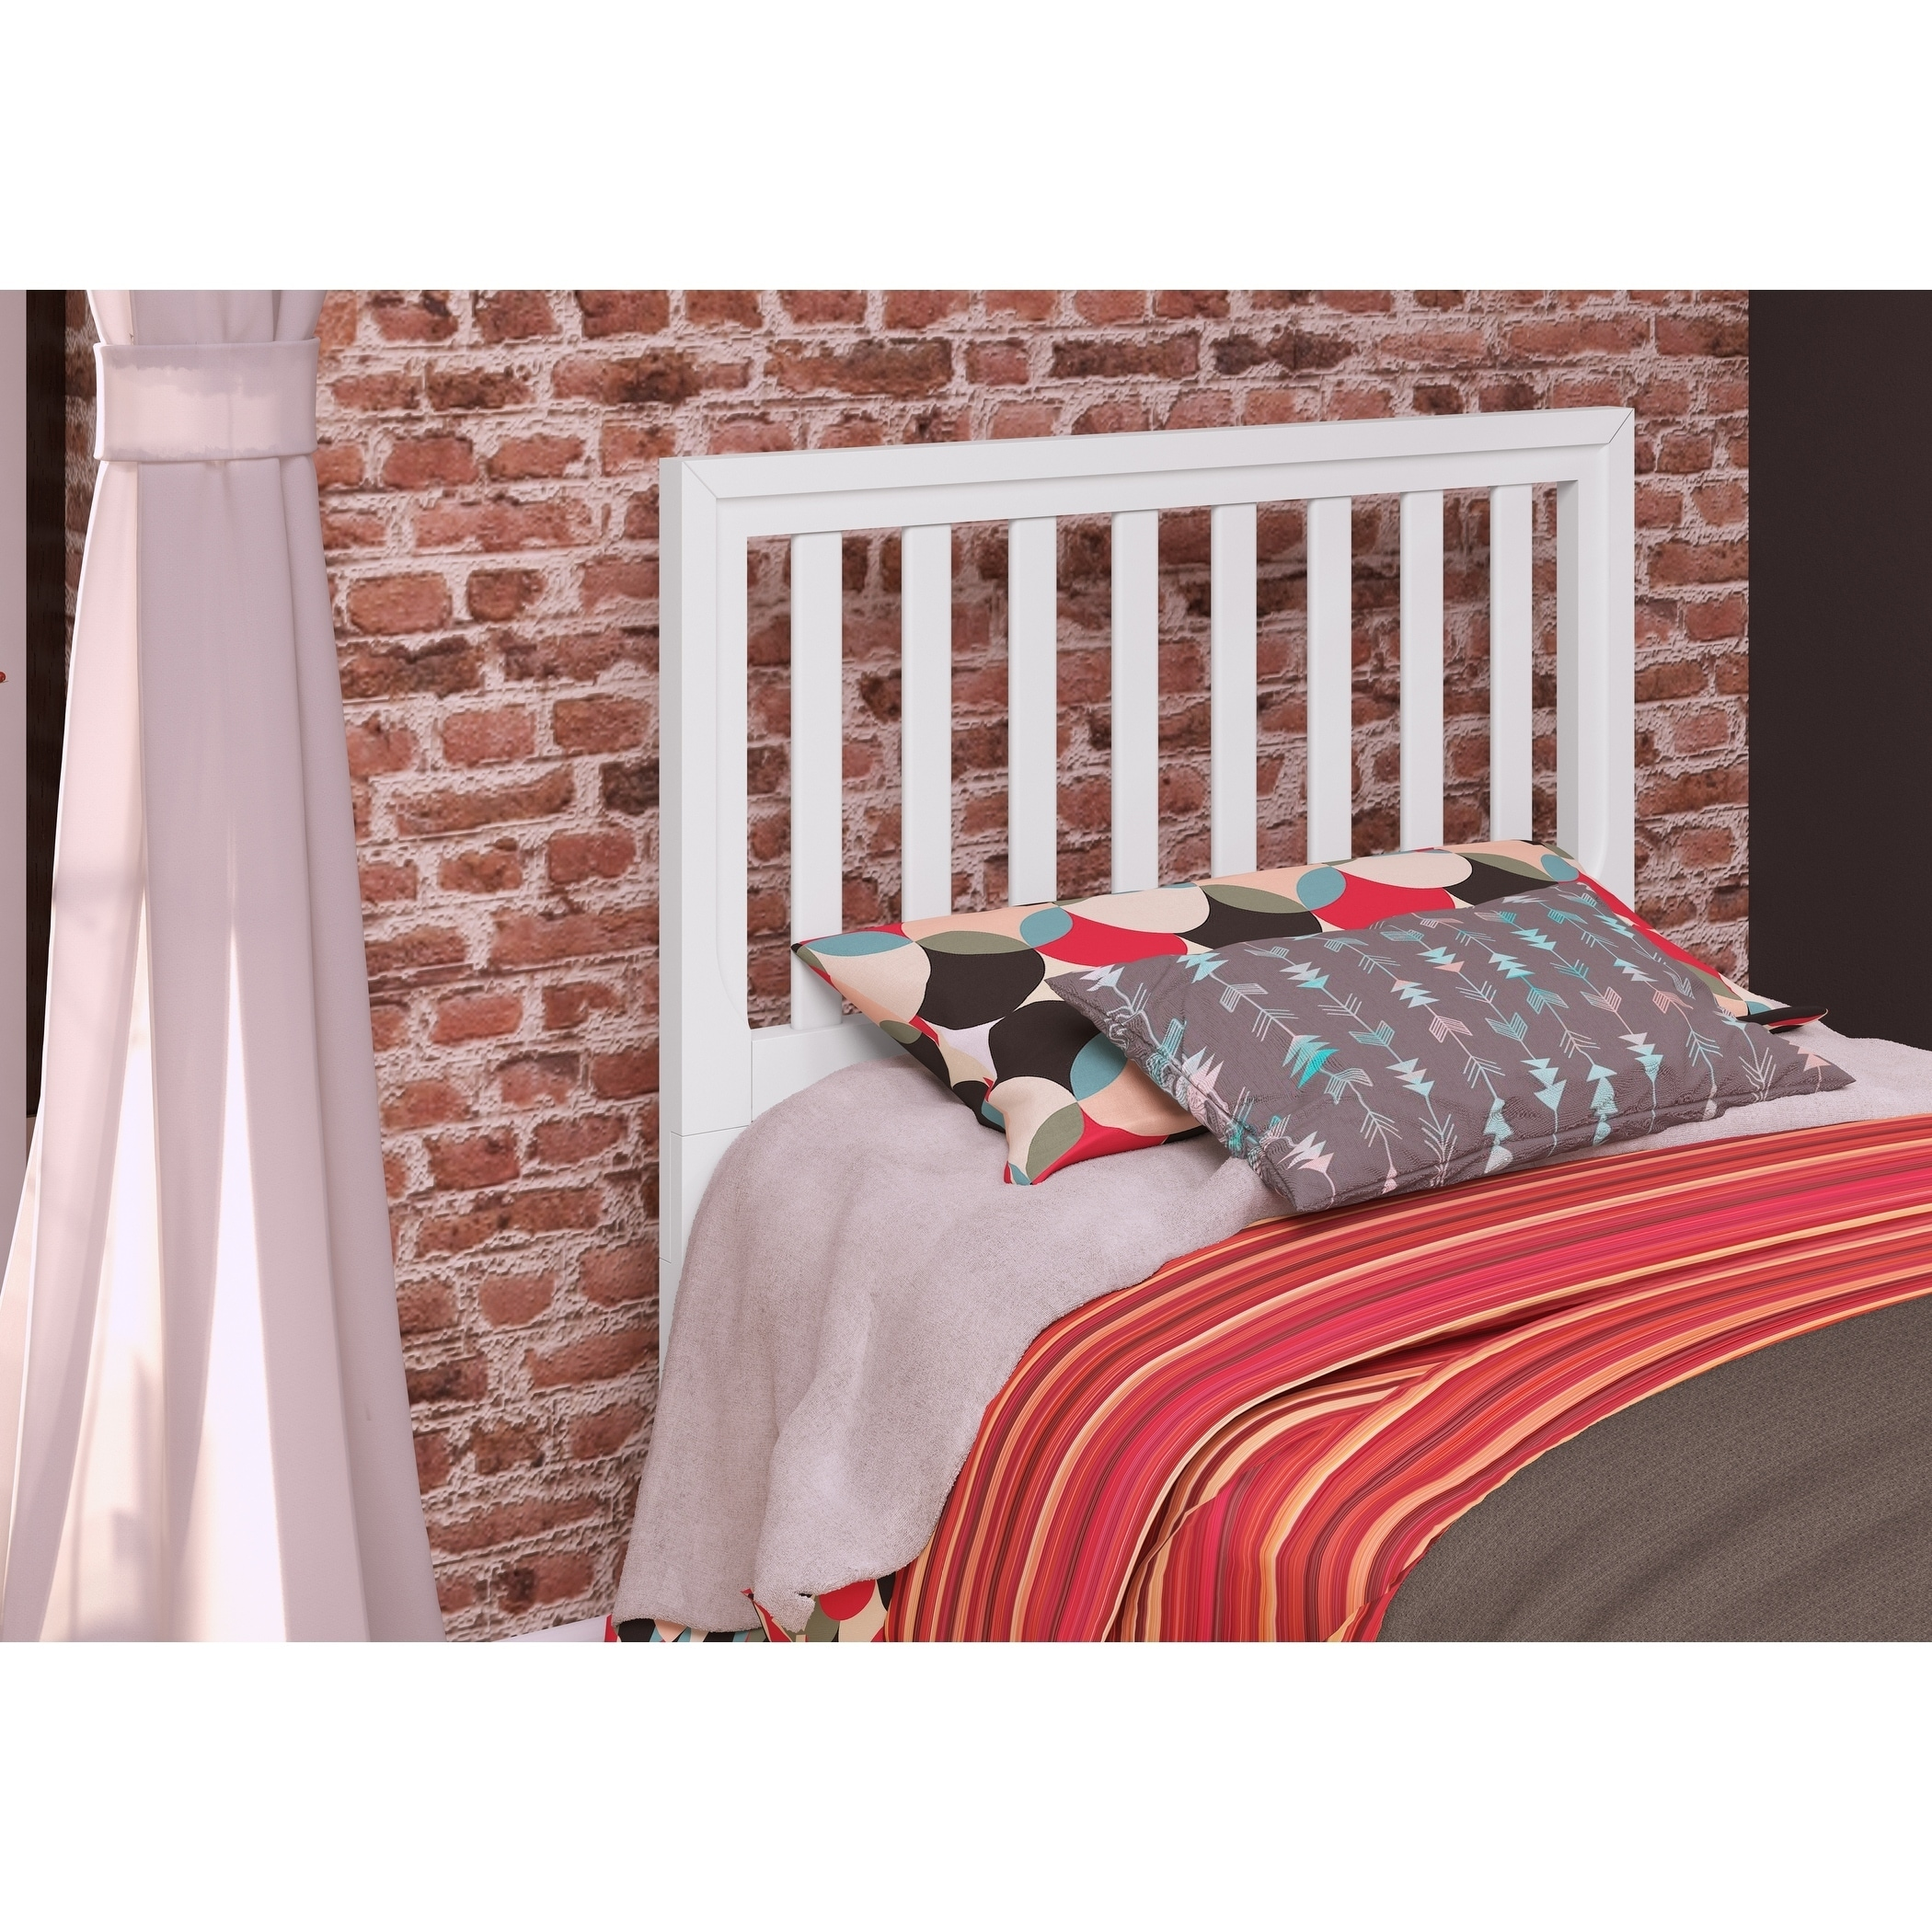 Kids Headboards Buy Pine Donco Kids Headboards Online At Overstock Our Best